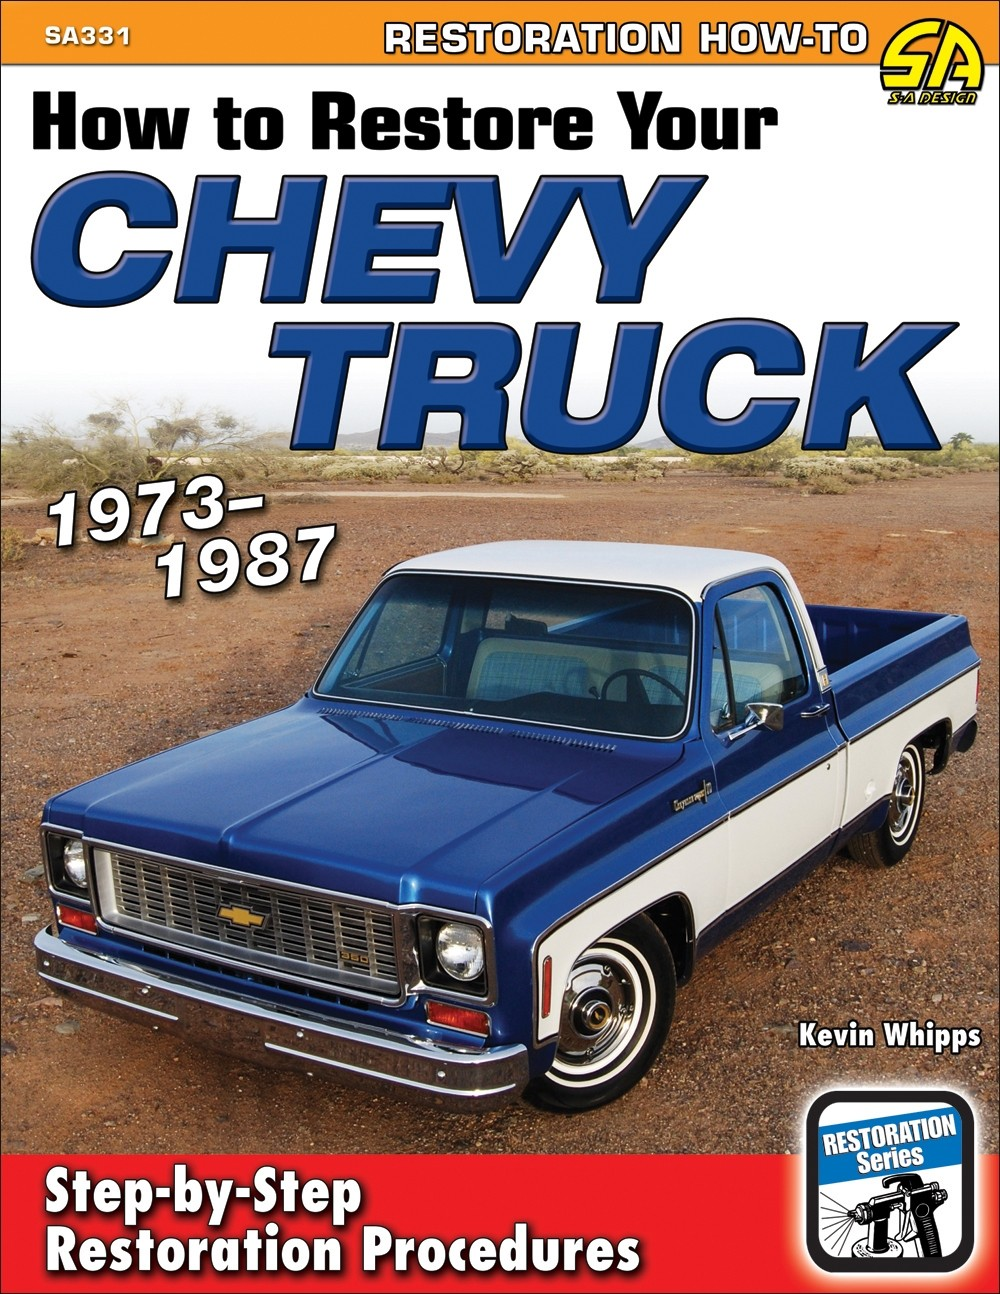 How to Restore Your Chevy Truck: 1973-1987 - The ins and outs of bringing your old Chevy back to life.